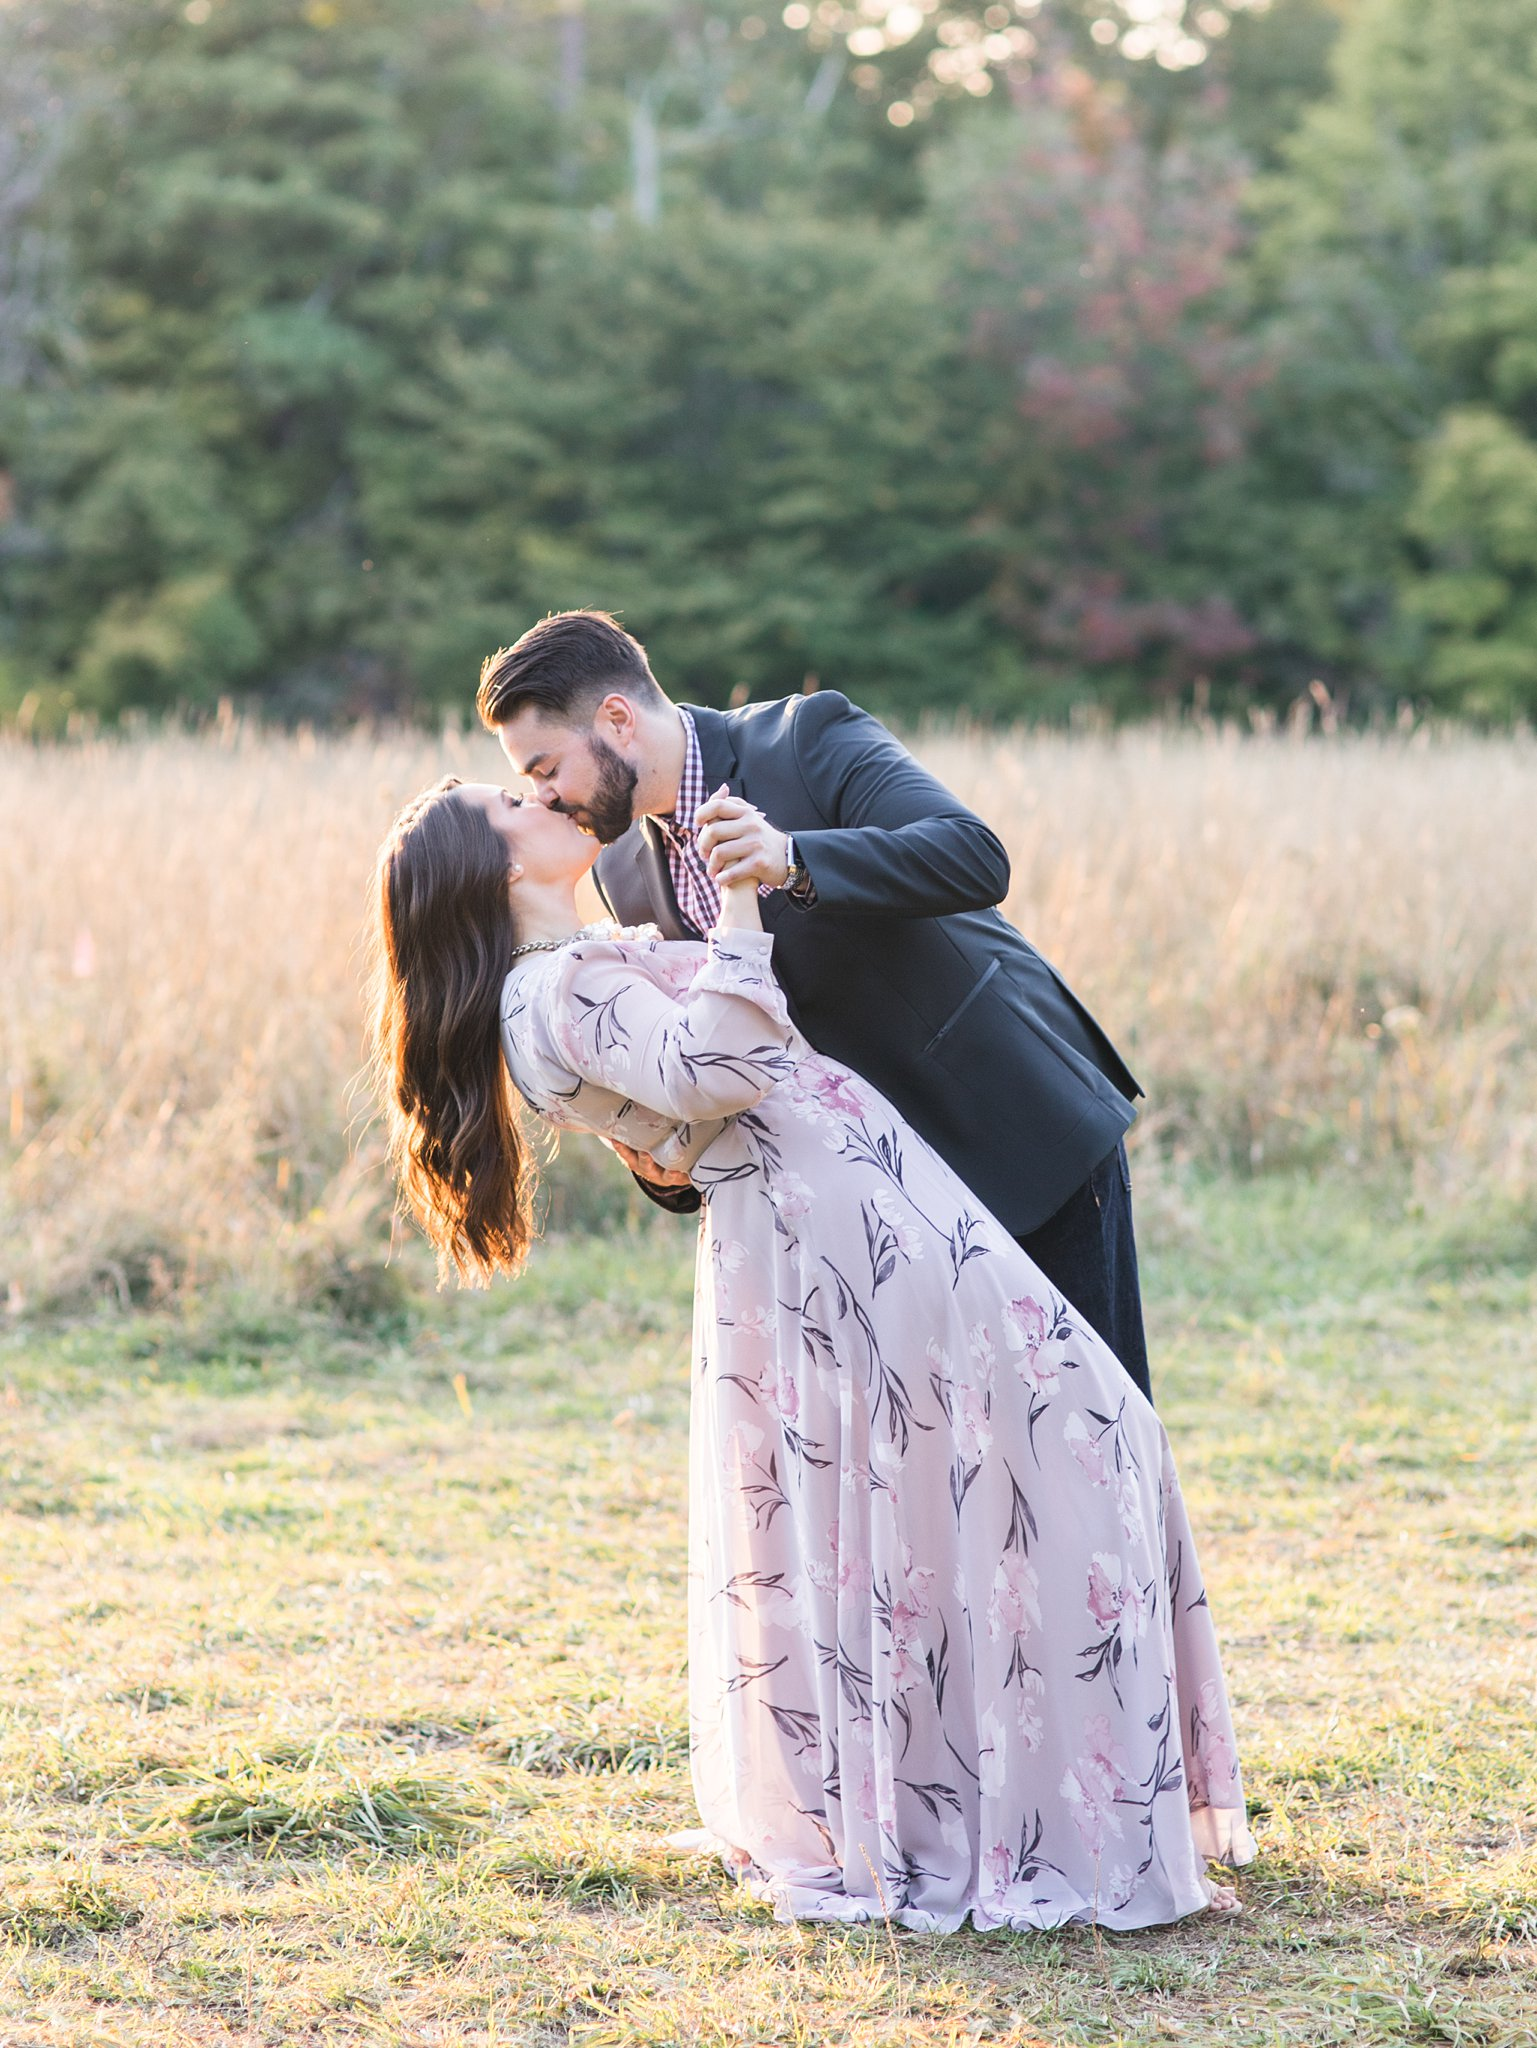 Dip kiss at sunset, Mackenzie King Estate Engagement Photos by Amy Pinder Photography